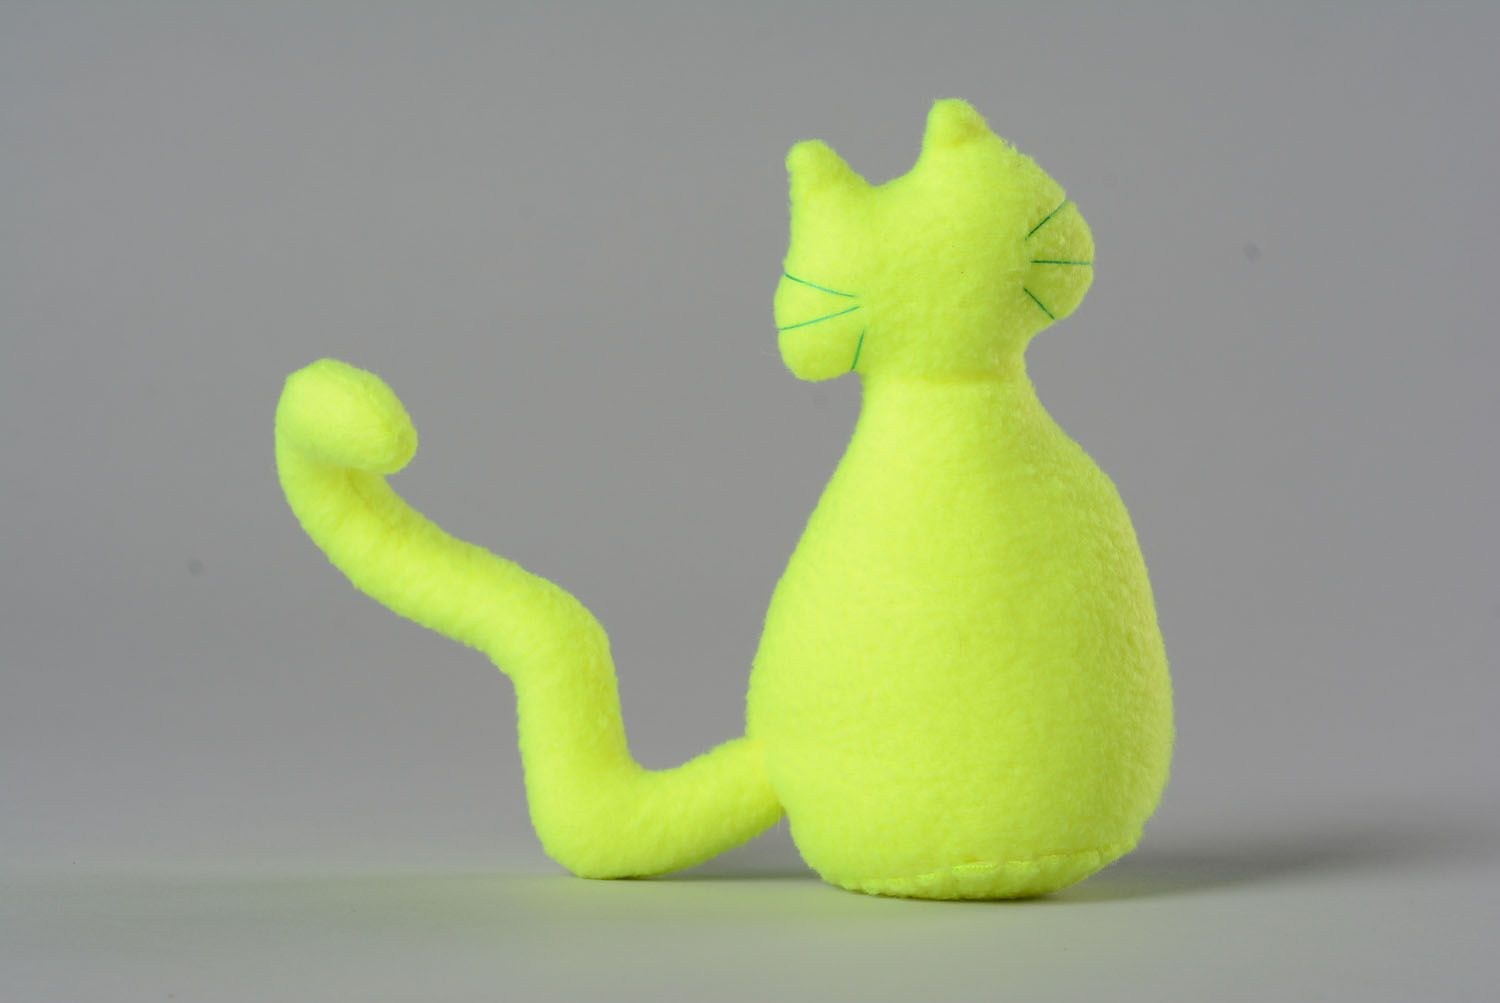 Soft toy in the shape of a yellow and green cat photo 5